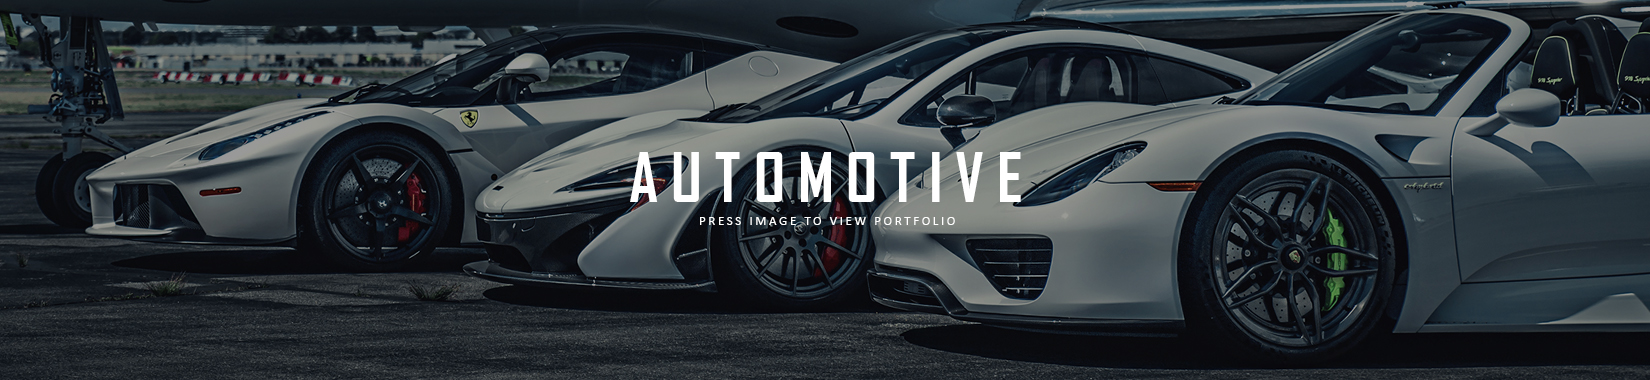 Luxury Automotive Photographer